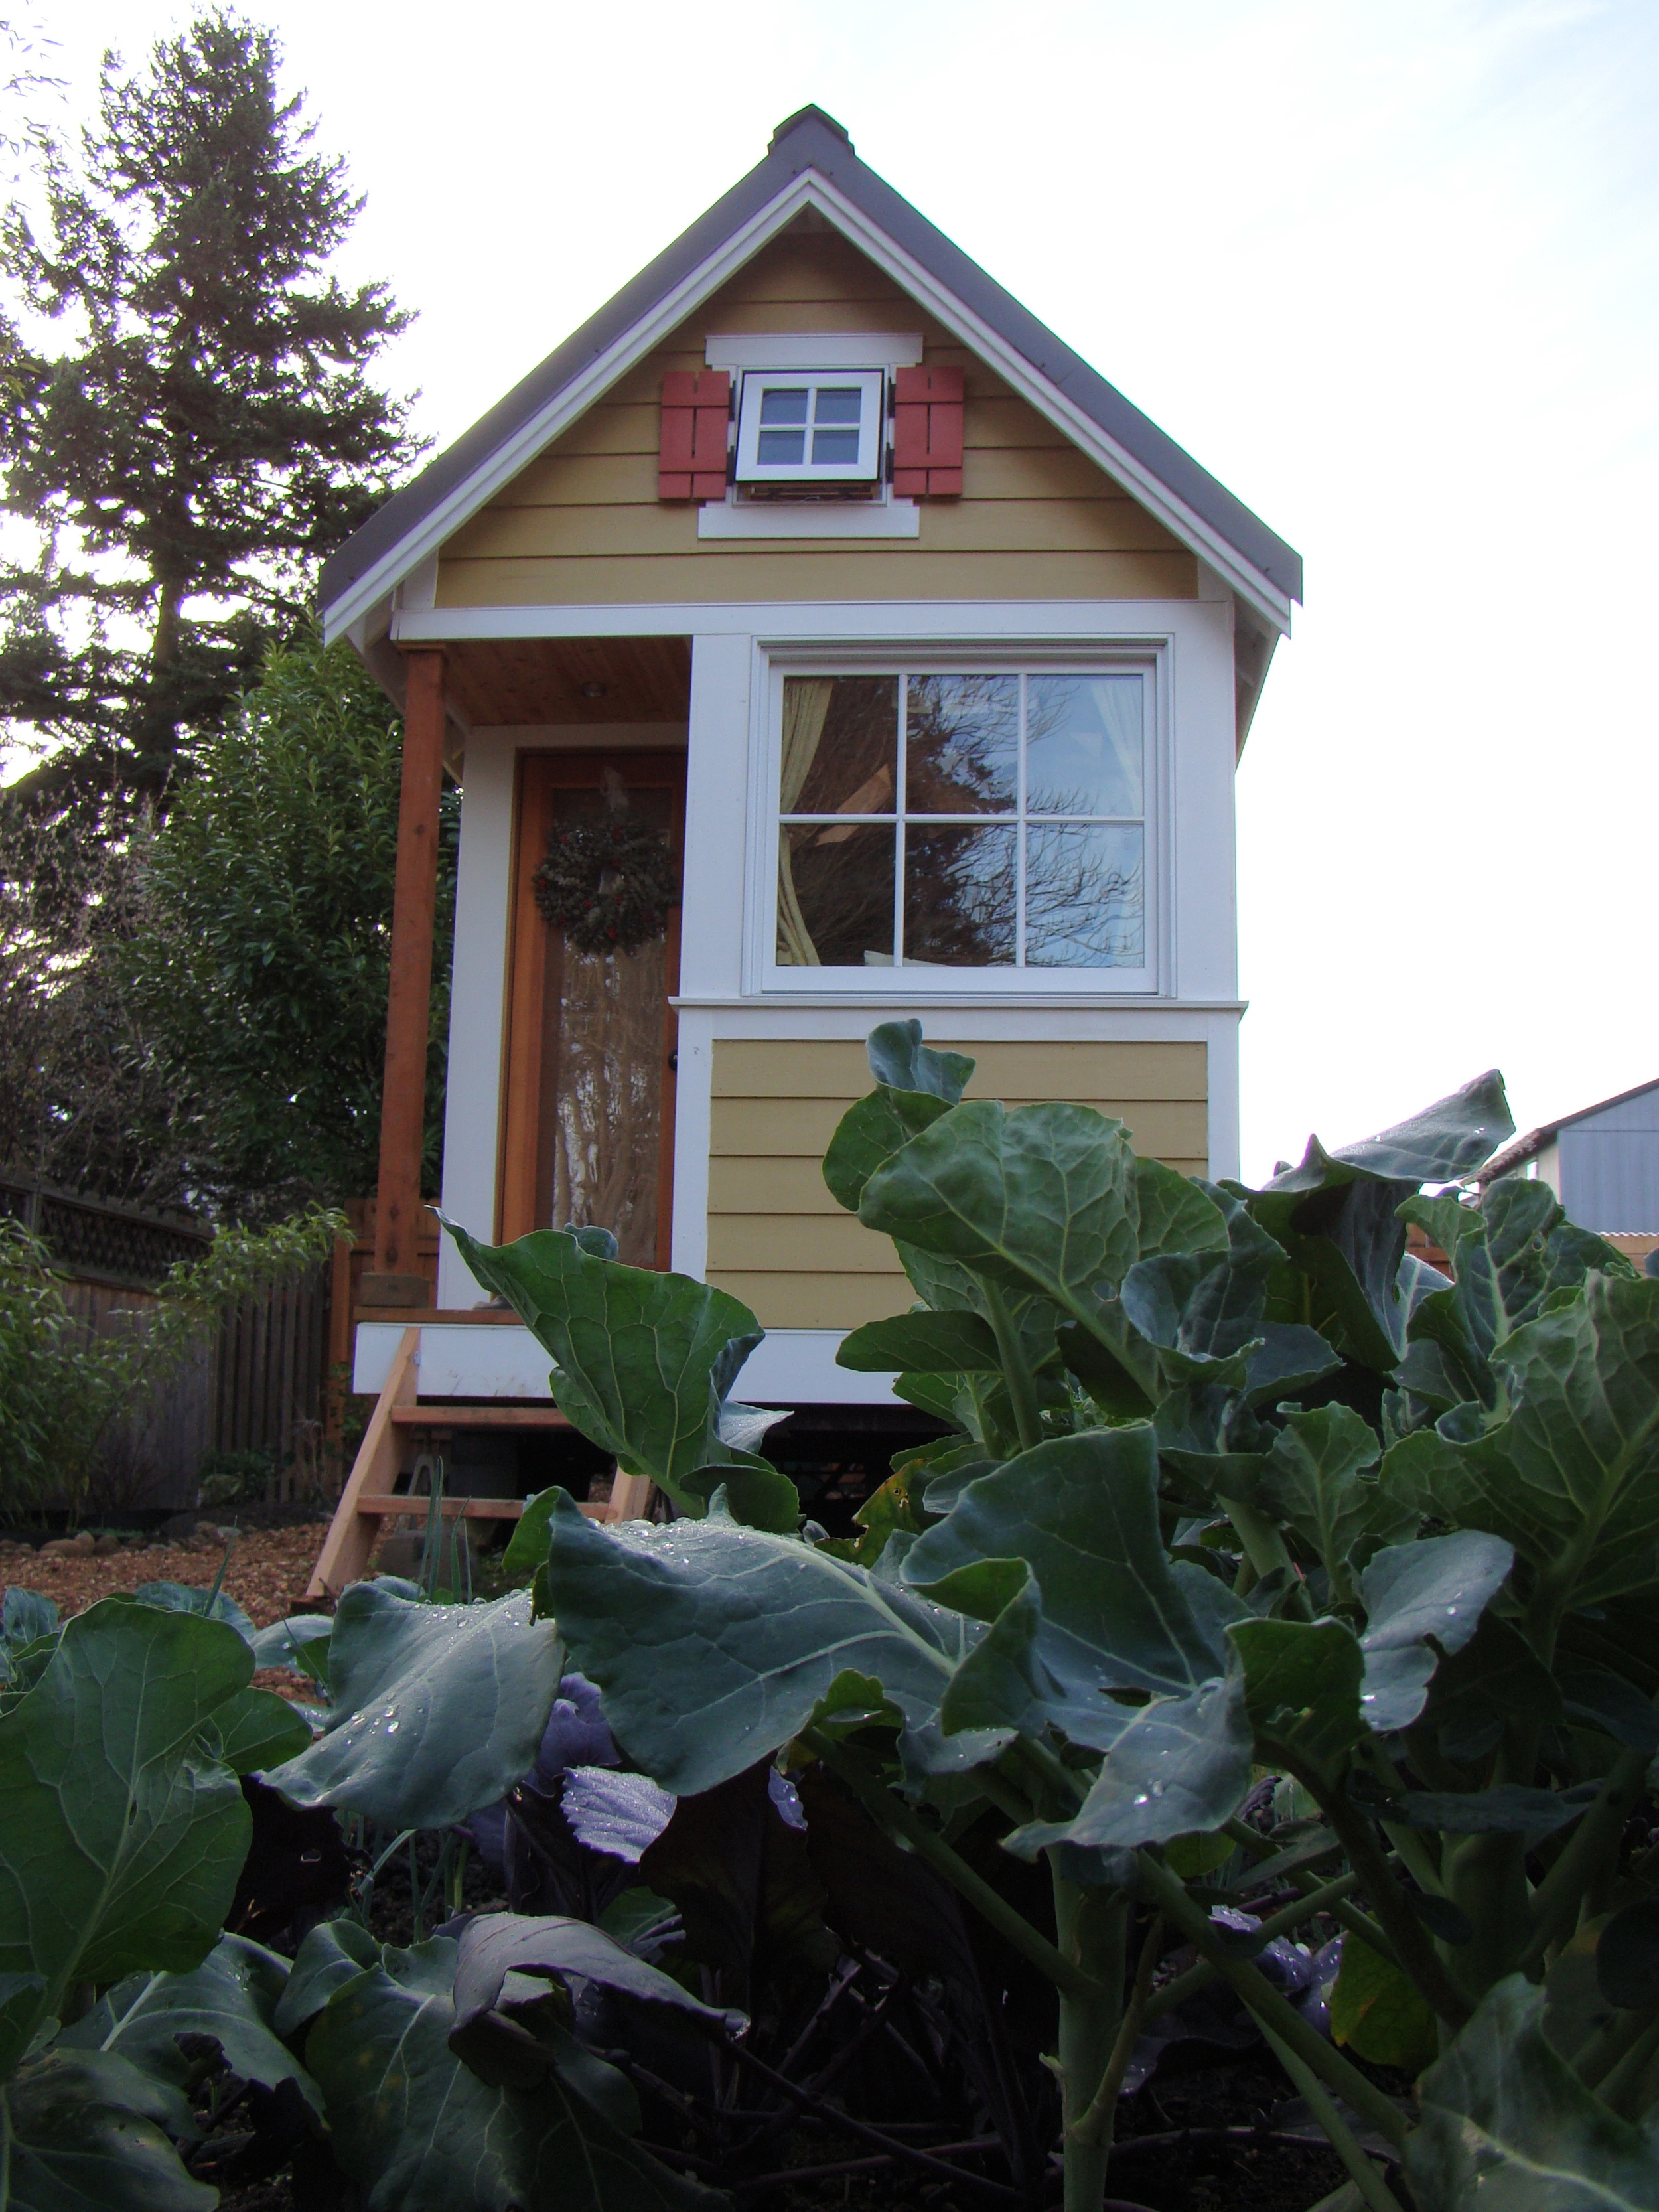 the tiny house I lived in for 10 months